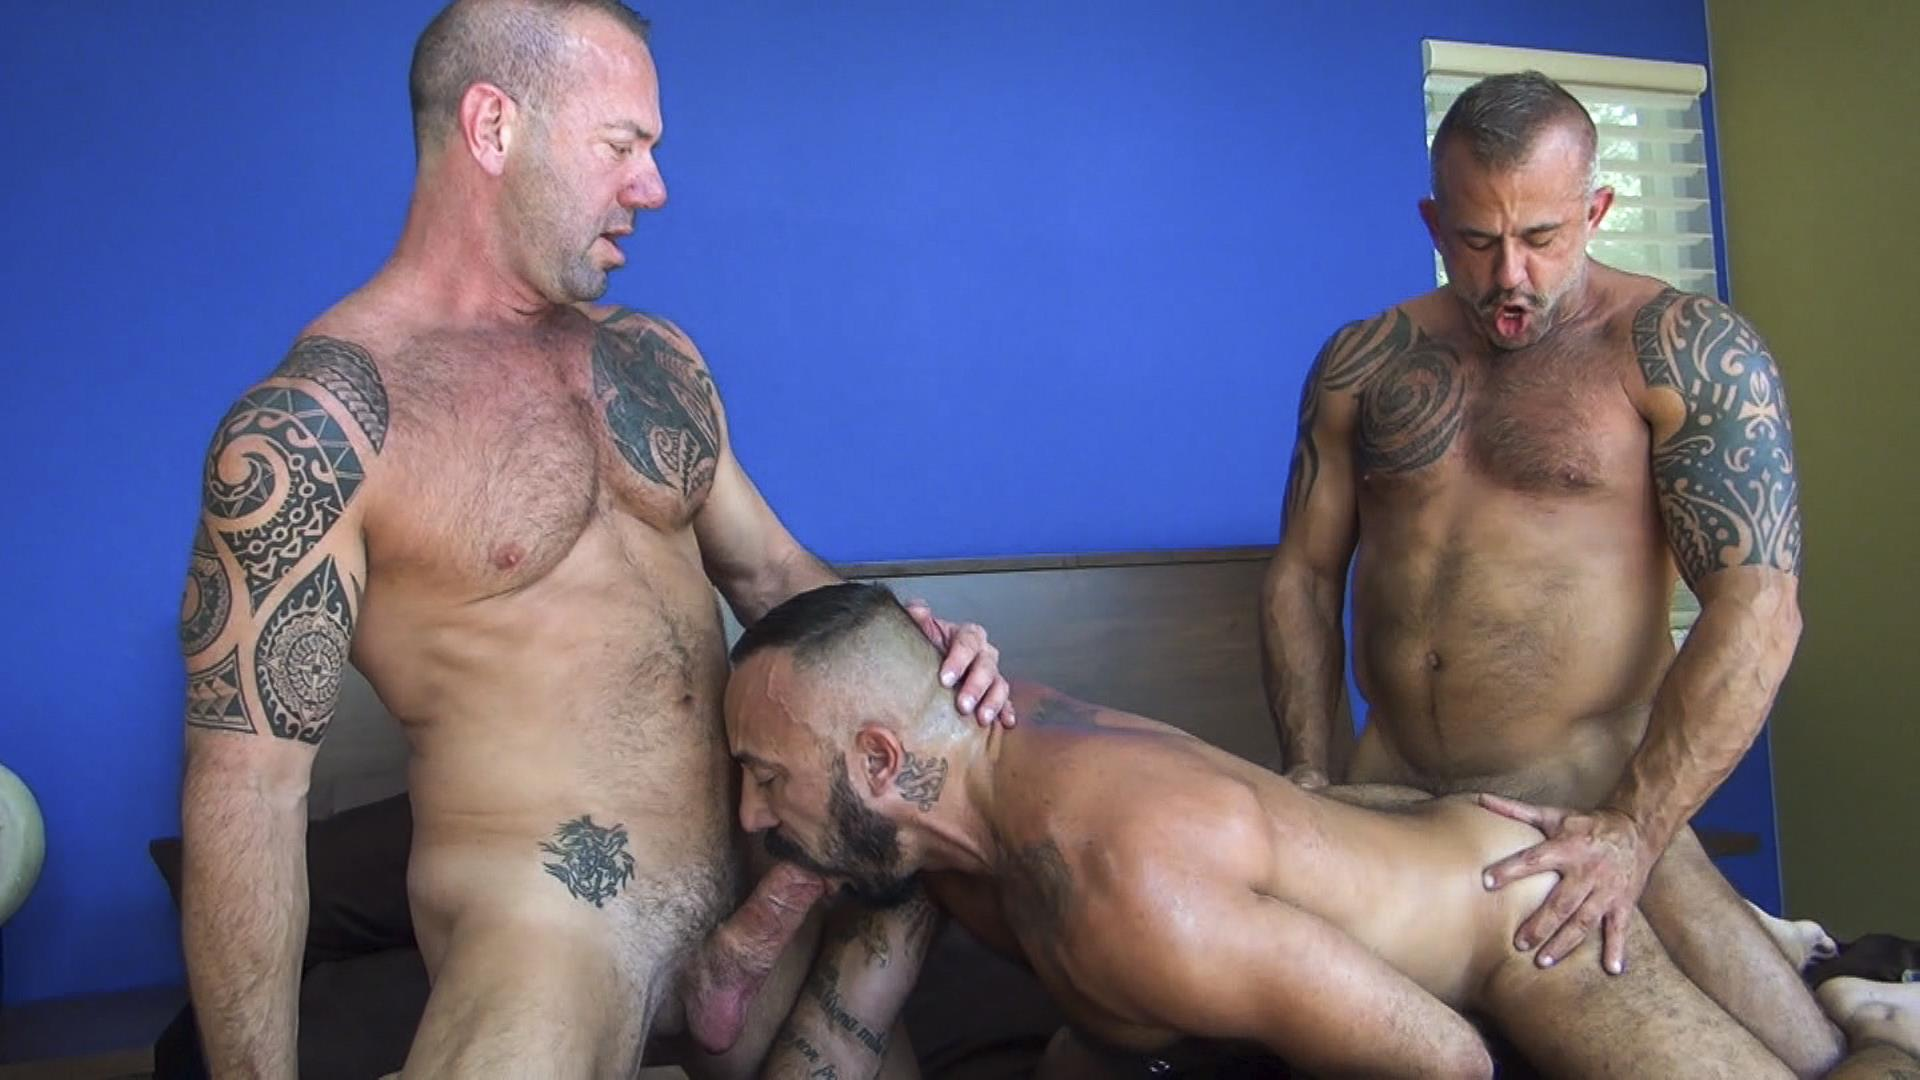 Raw-Fuck-Club-Alessio-Romero-and-Jon-Galt-and-Vic-Rocco-Hairy-Muscle-Daddy-Bareback-Amateur-Gay-Porn-8 Hairy Muscle Daddy Threeway Double Bareback Penetration